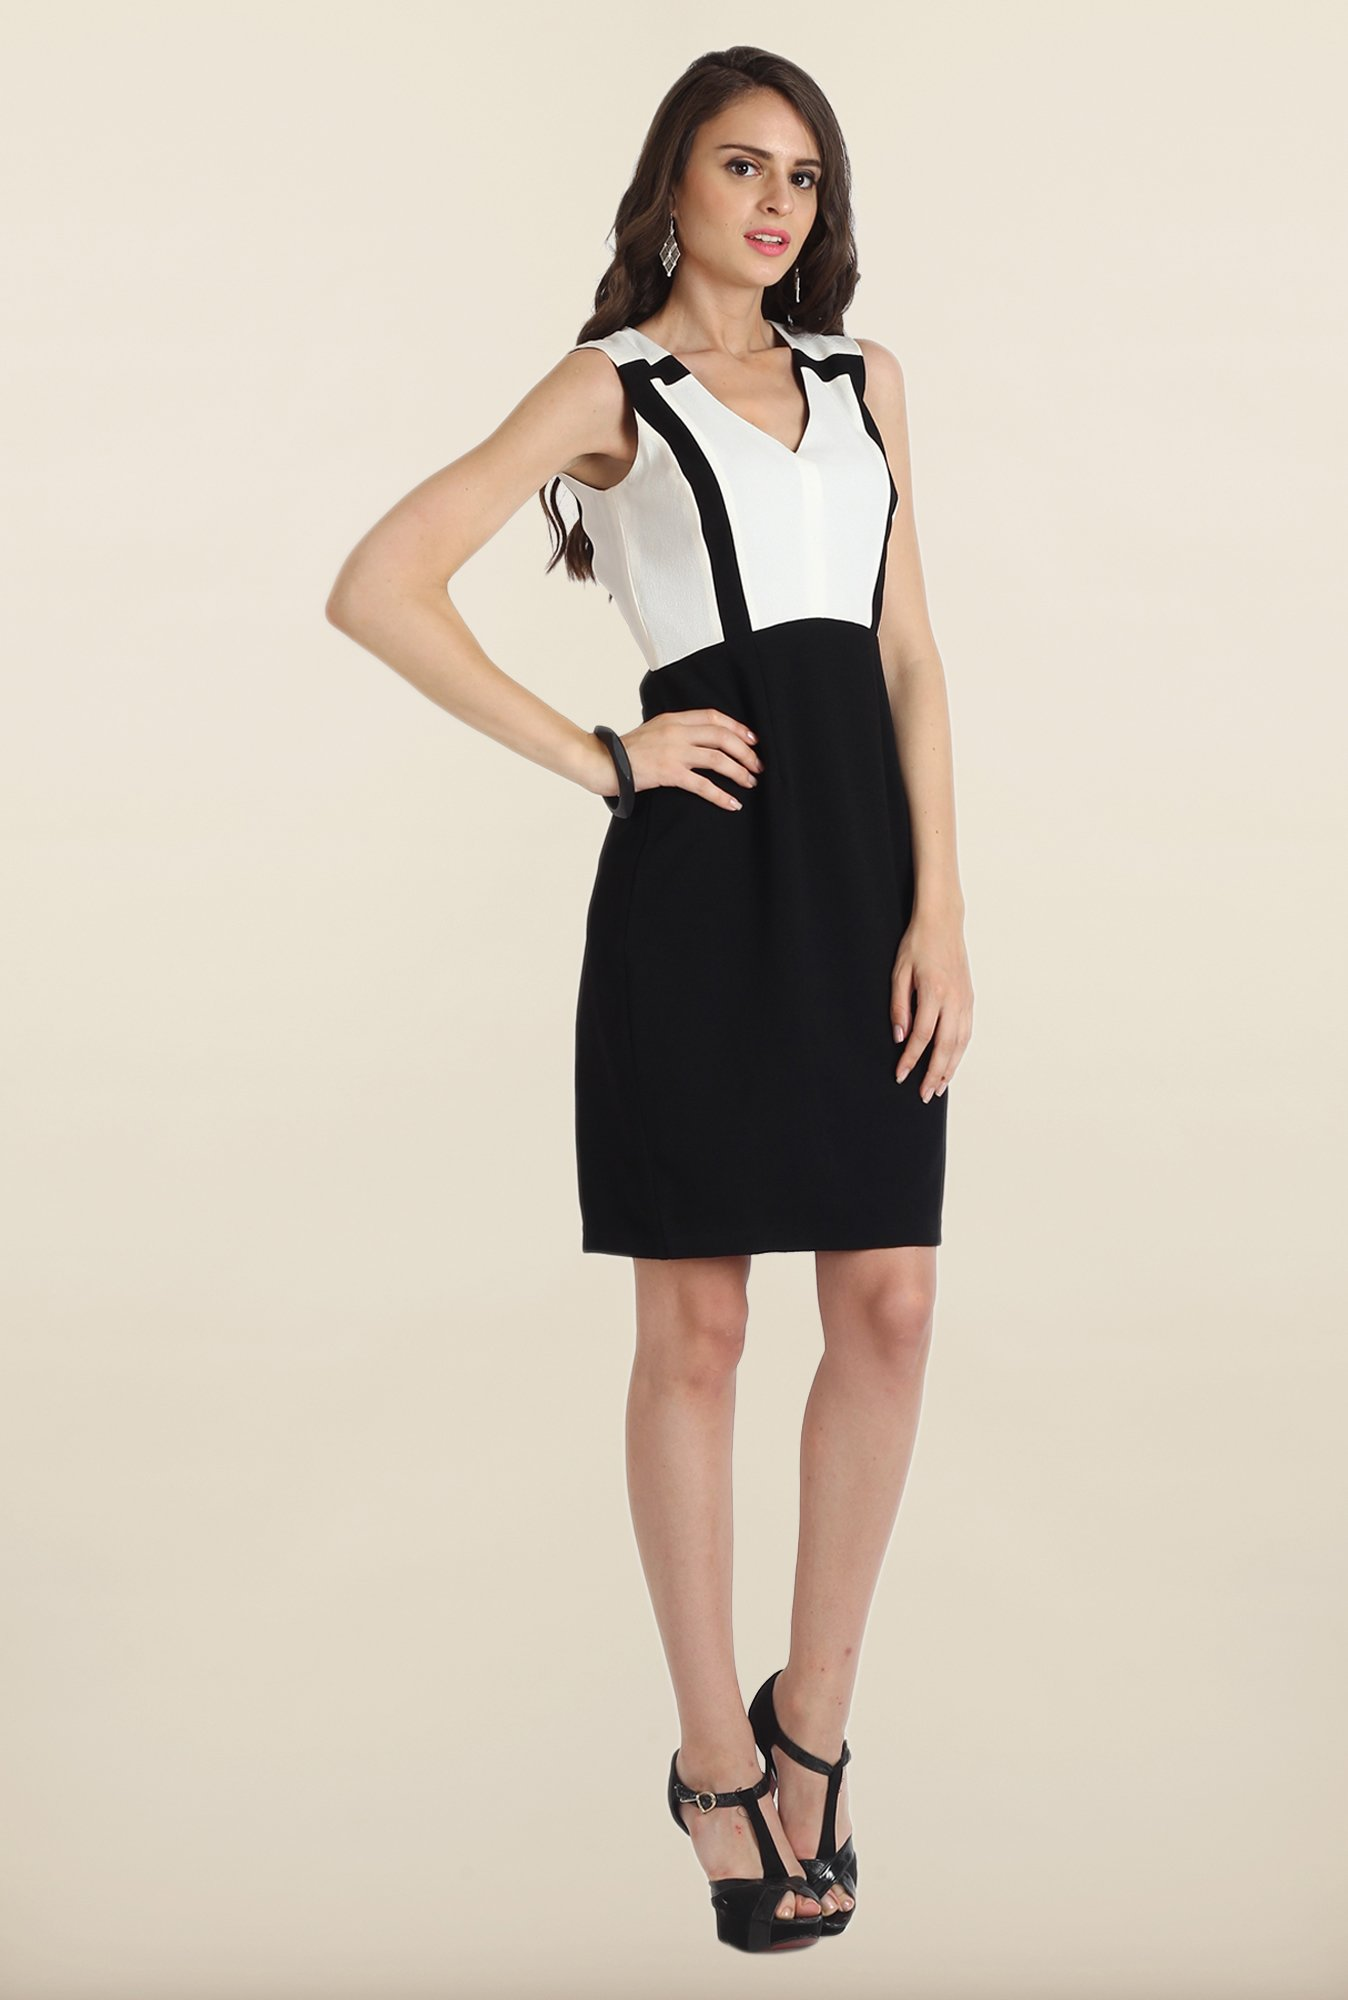 Avirate White & Black Solid Shift Dress